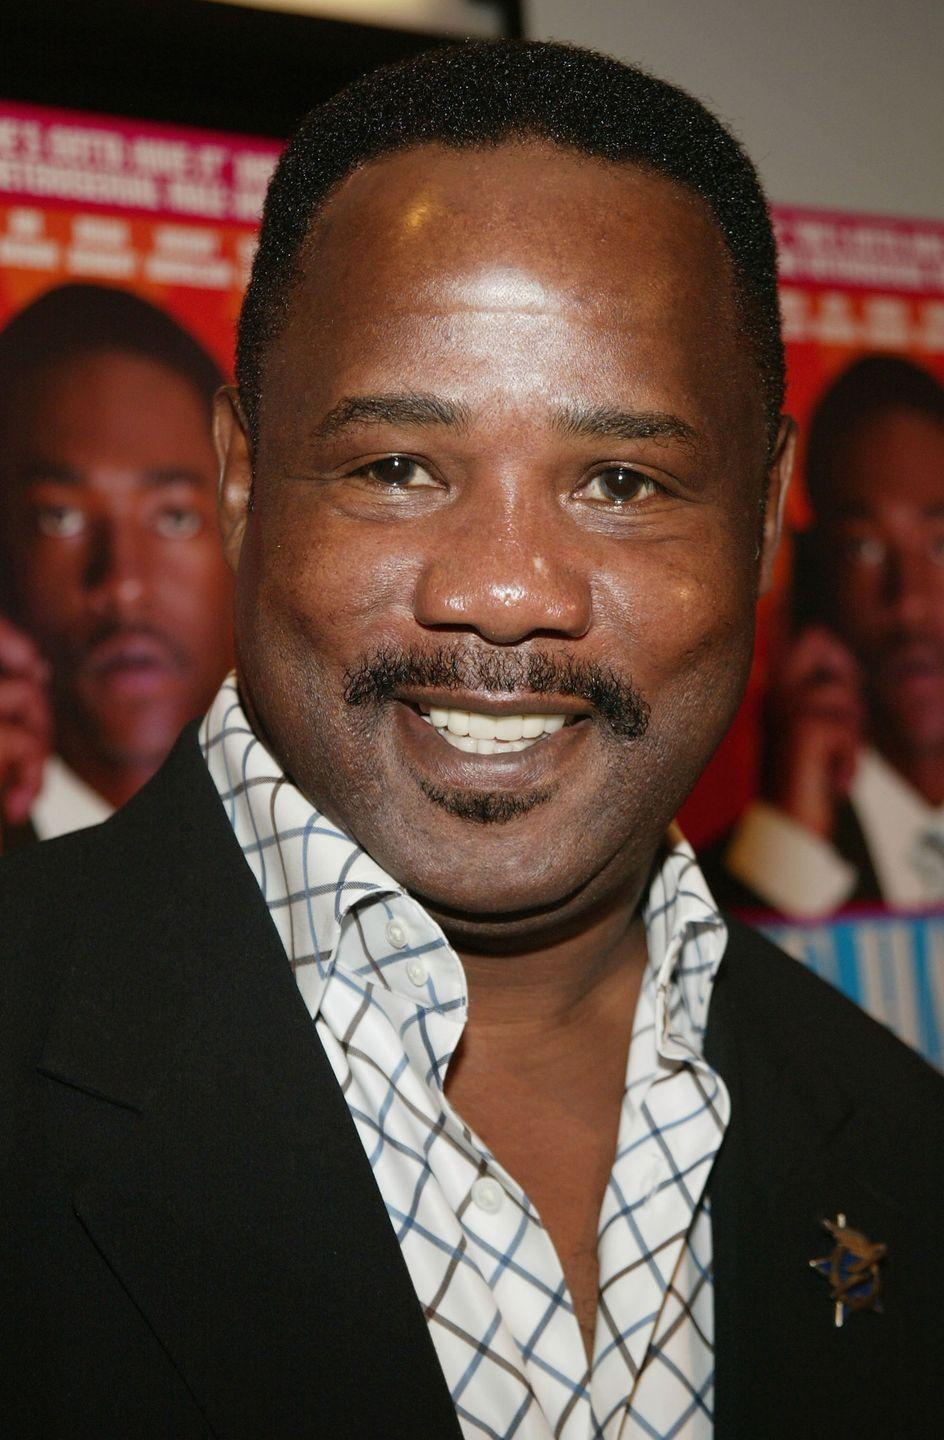 """<p>Whitlock had a lengthy career before landing the role of Senator Clay Davis, which became a fan favorite, mostly because of his iconic catchphrase: """"<a href=""""https://www.youtube.com/watch?v=l1dnqKGuezo"""" rel=""""nofollow noopener"""" target=""""_blank"""" data-ylk=""""slk:Sheeee-it"""" class=""""link rapid-noclick-resp"""">Sheeee-it</a>.""""</p><p>""""I didn't find out until later that the guy was based on a politician down in Baltimore,"""" he told <em><a href=""""https://www.maxim.com/entertainment/maxim-interrogates-makers-and-stars-wire"""" rel=""""nofollow noopener"""" target=""""_blank"""" data-ylk=""""slk:Maxim"""" class=""""link rapid-noclick-resp"""">Maxim</a></em>. """"But when it comes to politicians with the swagger of a Clay Davis, there's a lot of guys out there you could base a character on. There were some people that just despised me, and then there were some people that just couldn't get enough of the character.""""</p>"""